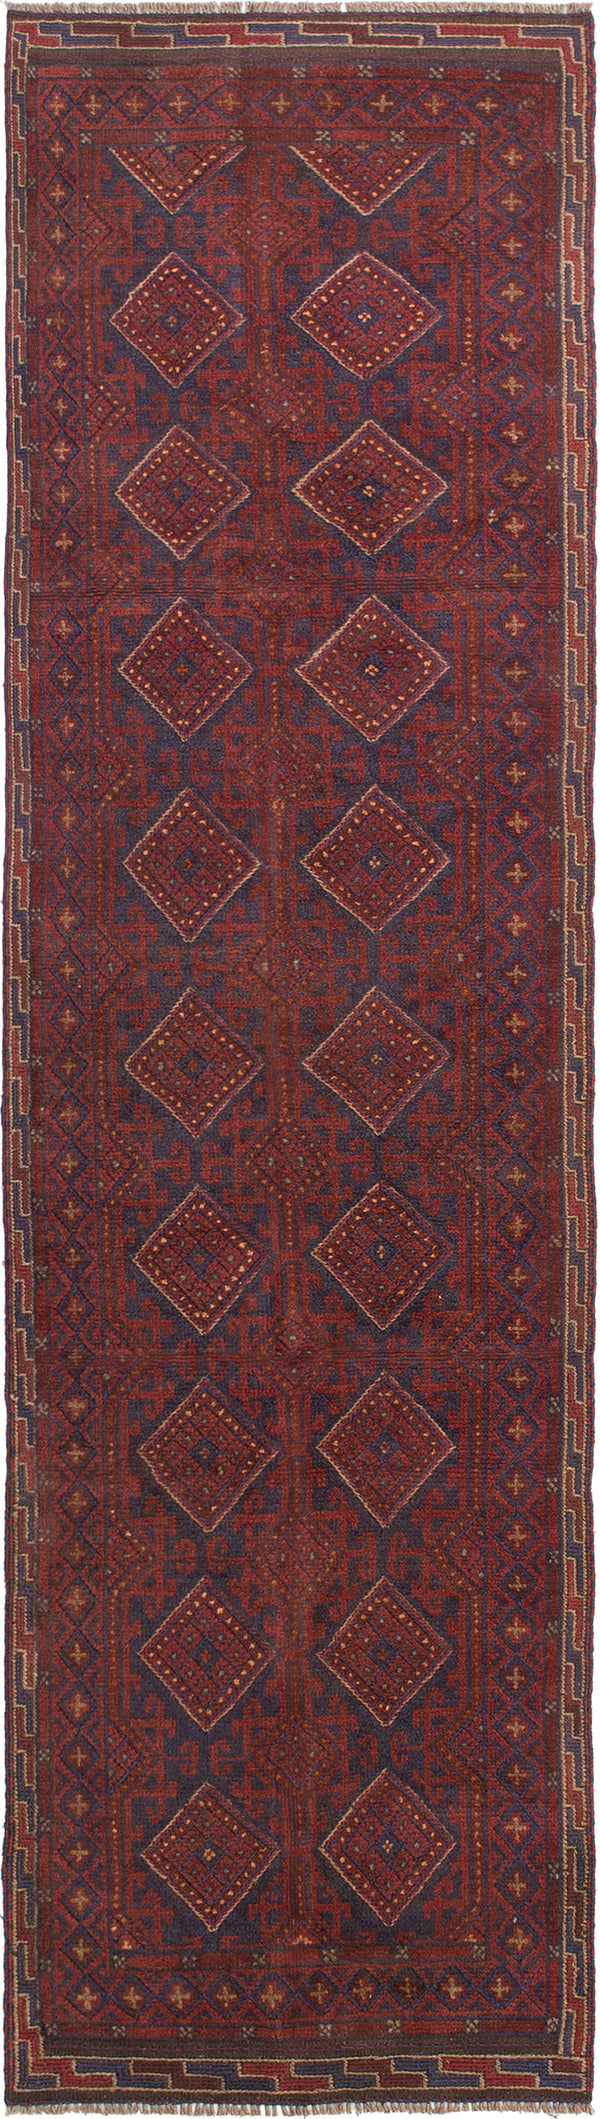 Hand-knotted Afghan Bordered  Tribal Tajik-Caucasian Runner rug  Dark Red 2.3 x 8.1